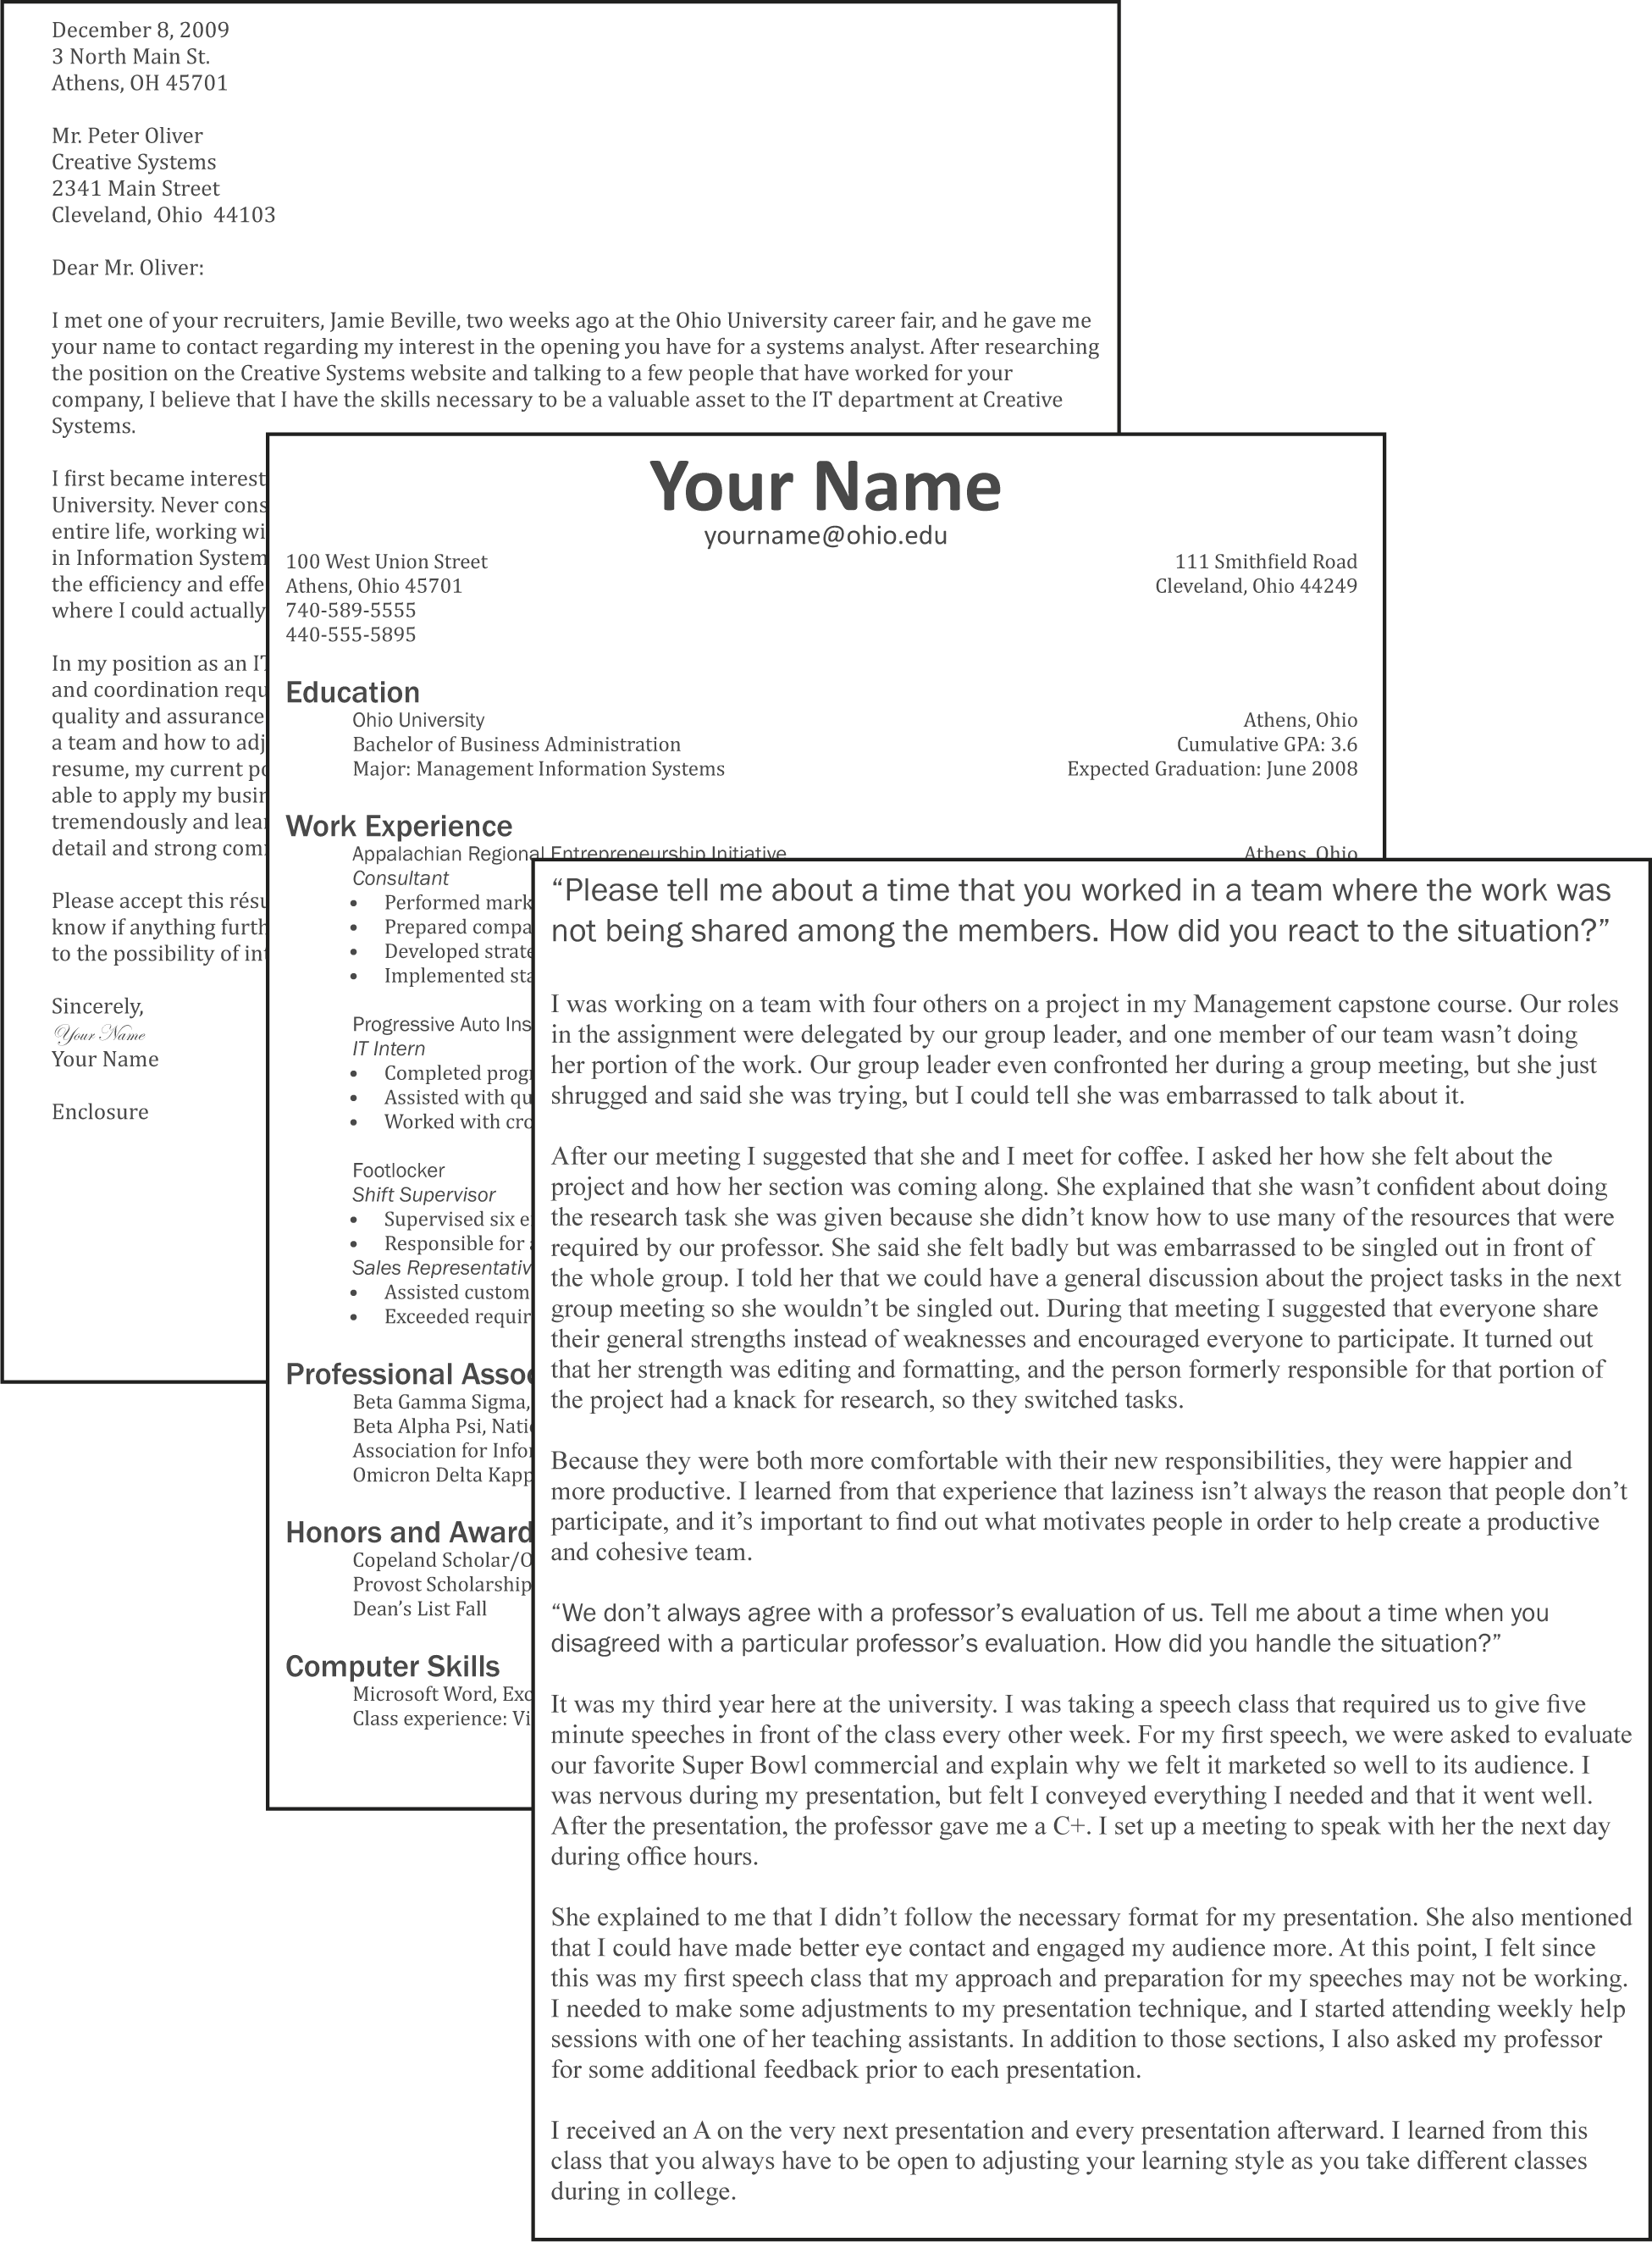 l3 assignment resume cover letter and interview - Creating A Cover Letter For A Resume